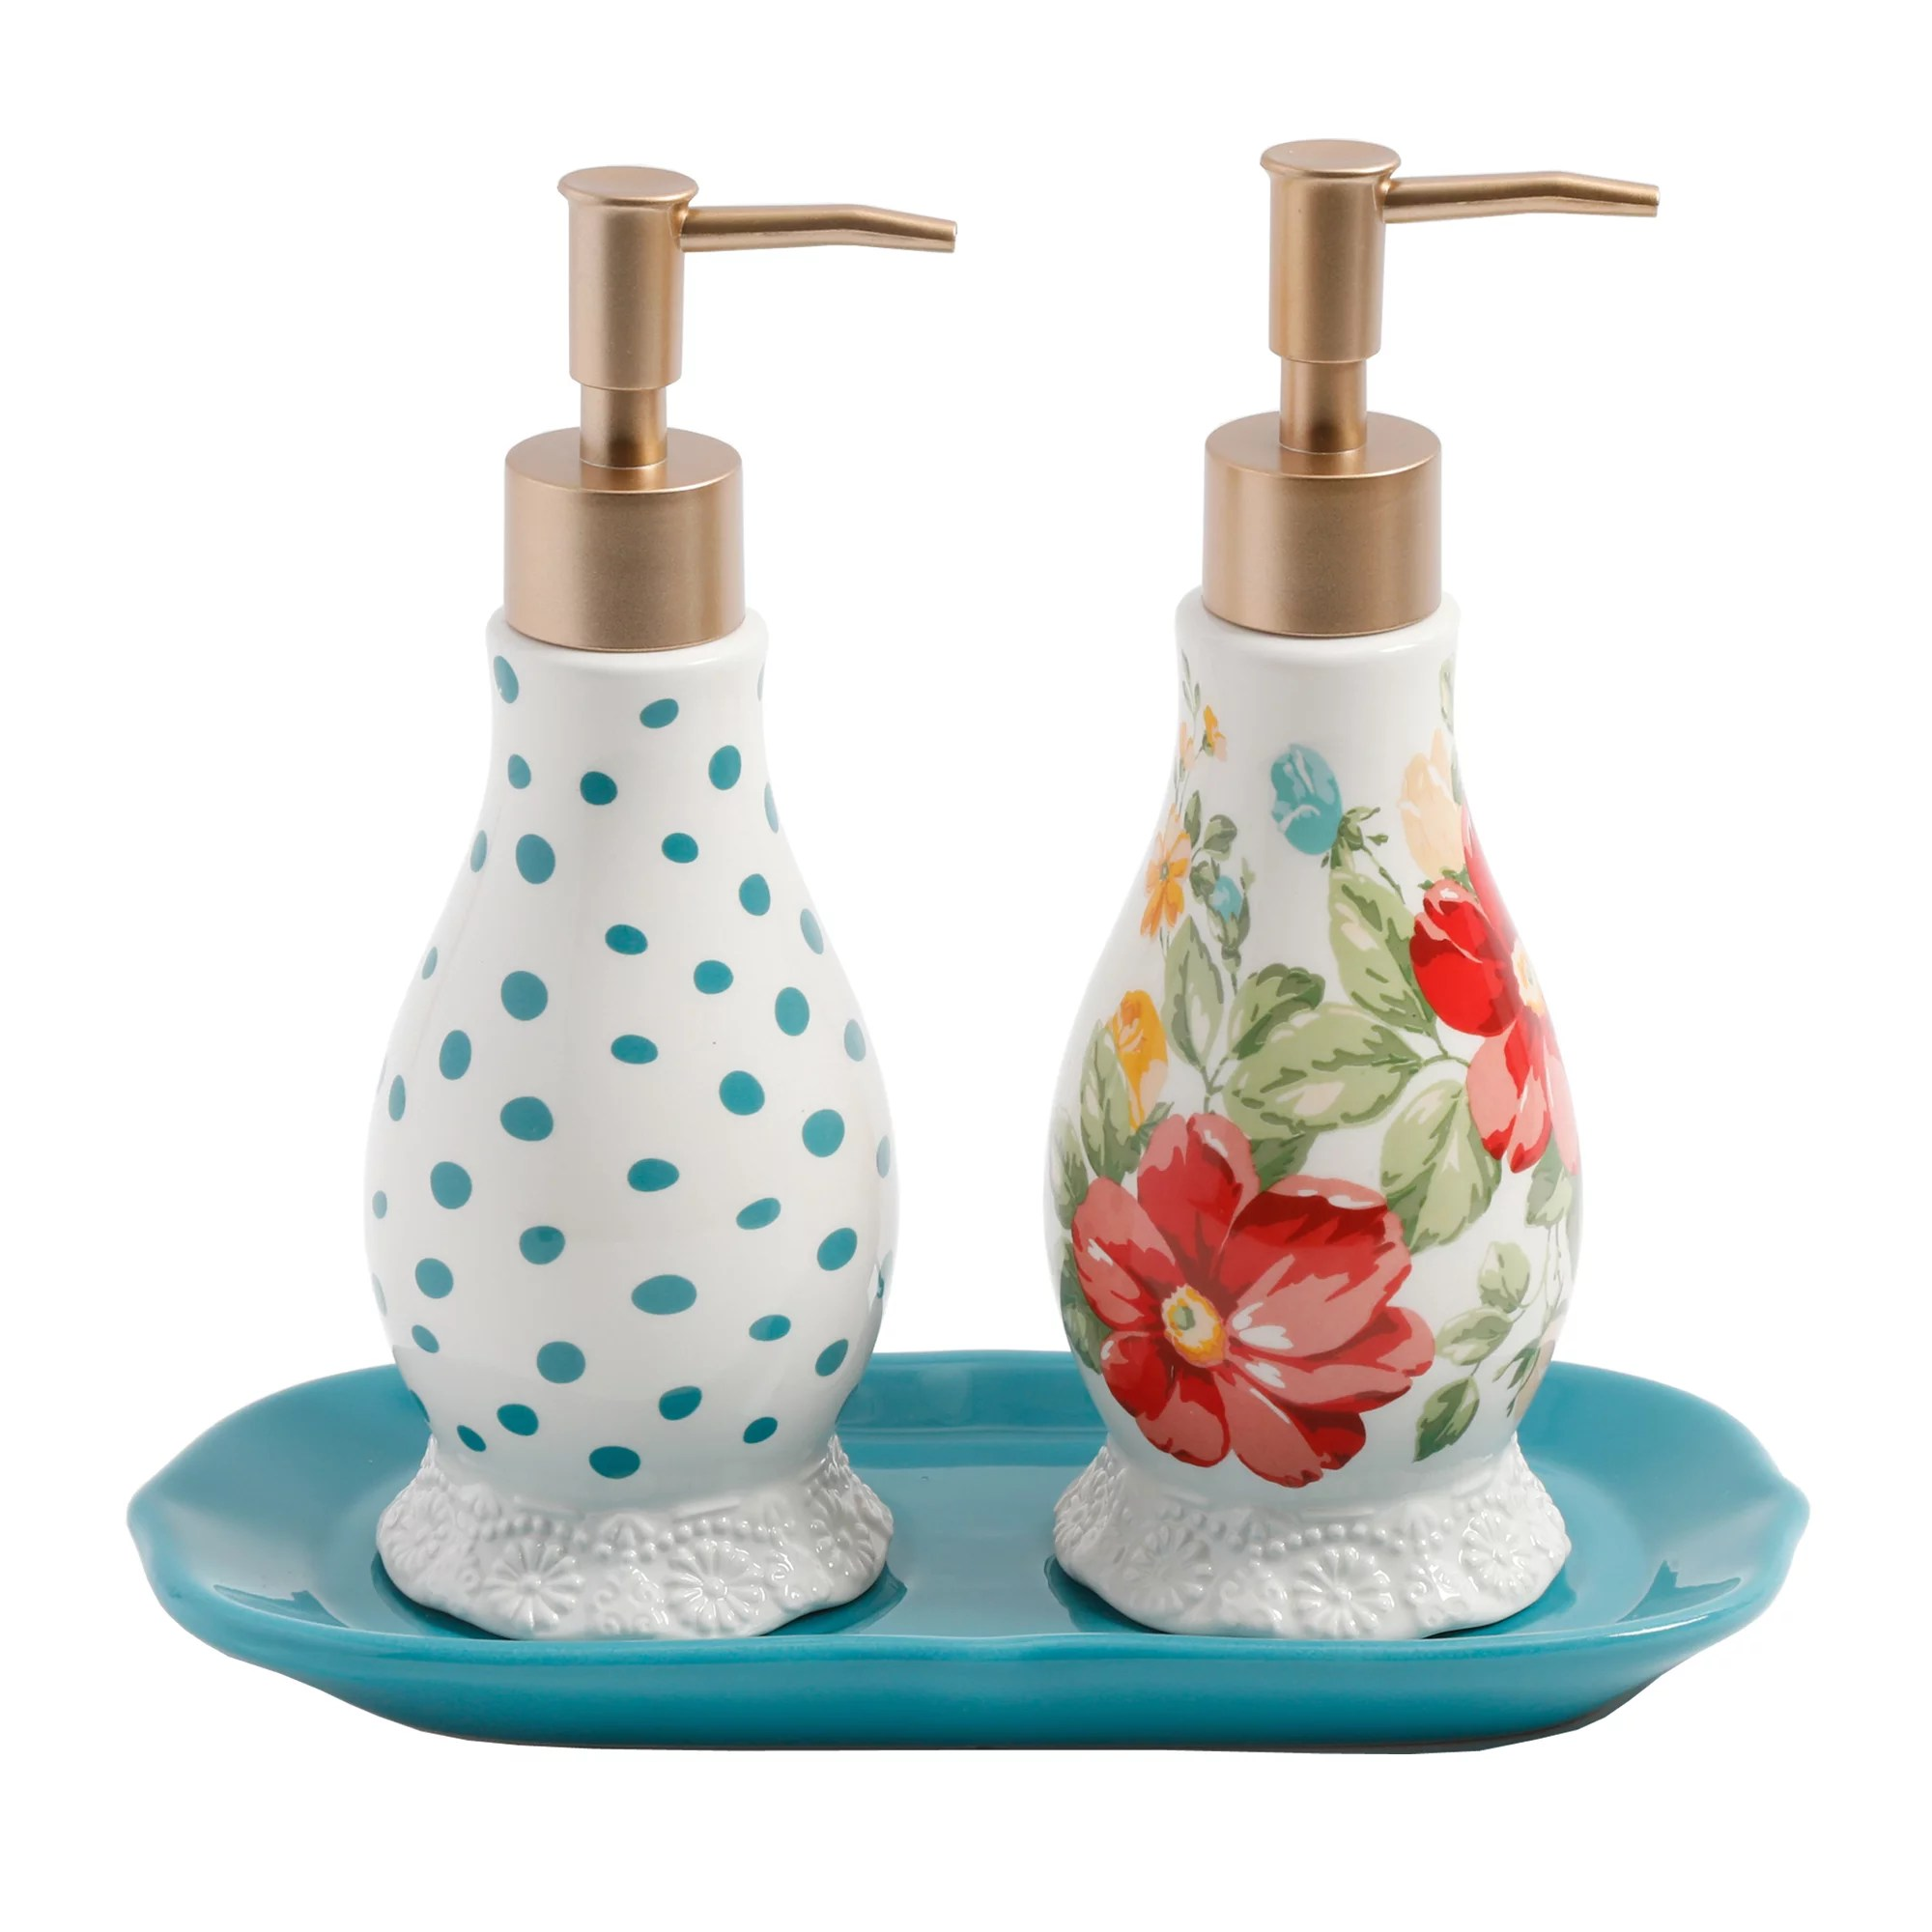 Unique Hand Soap Dispenser The Pioneer Woman Vintage Floral Soap And Lotion Set Walmart